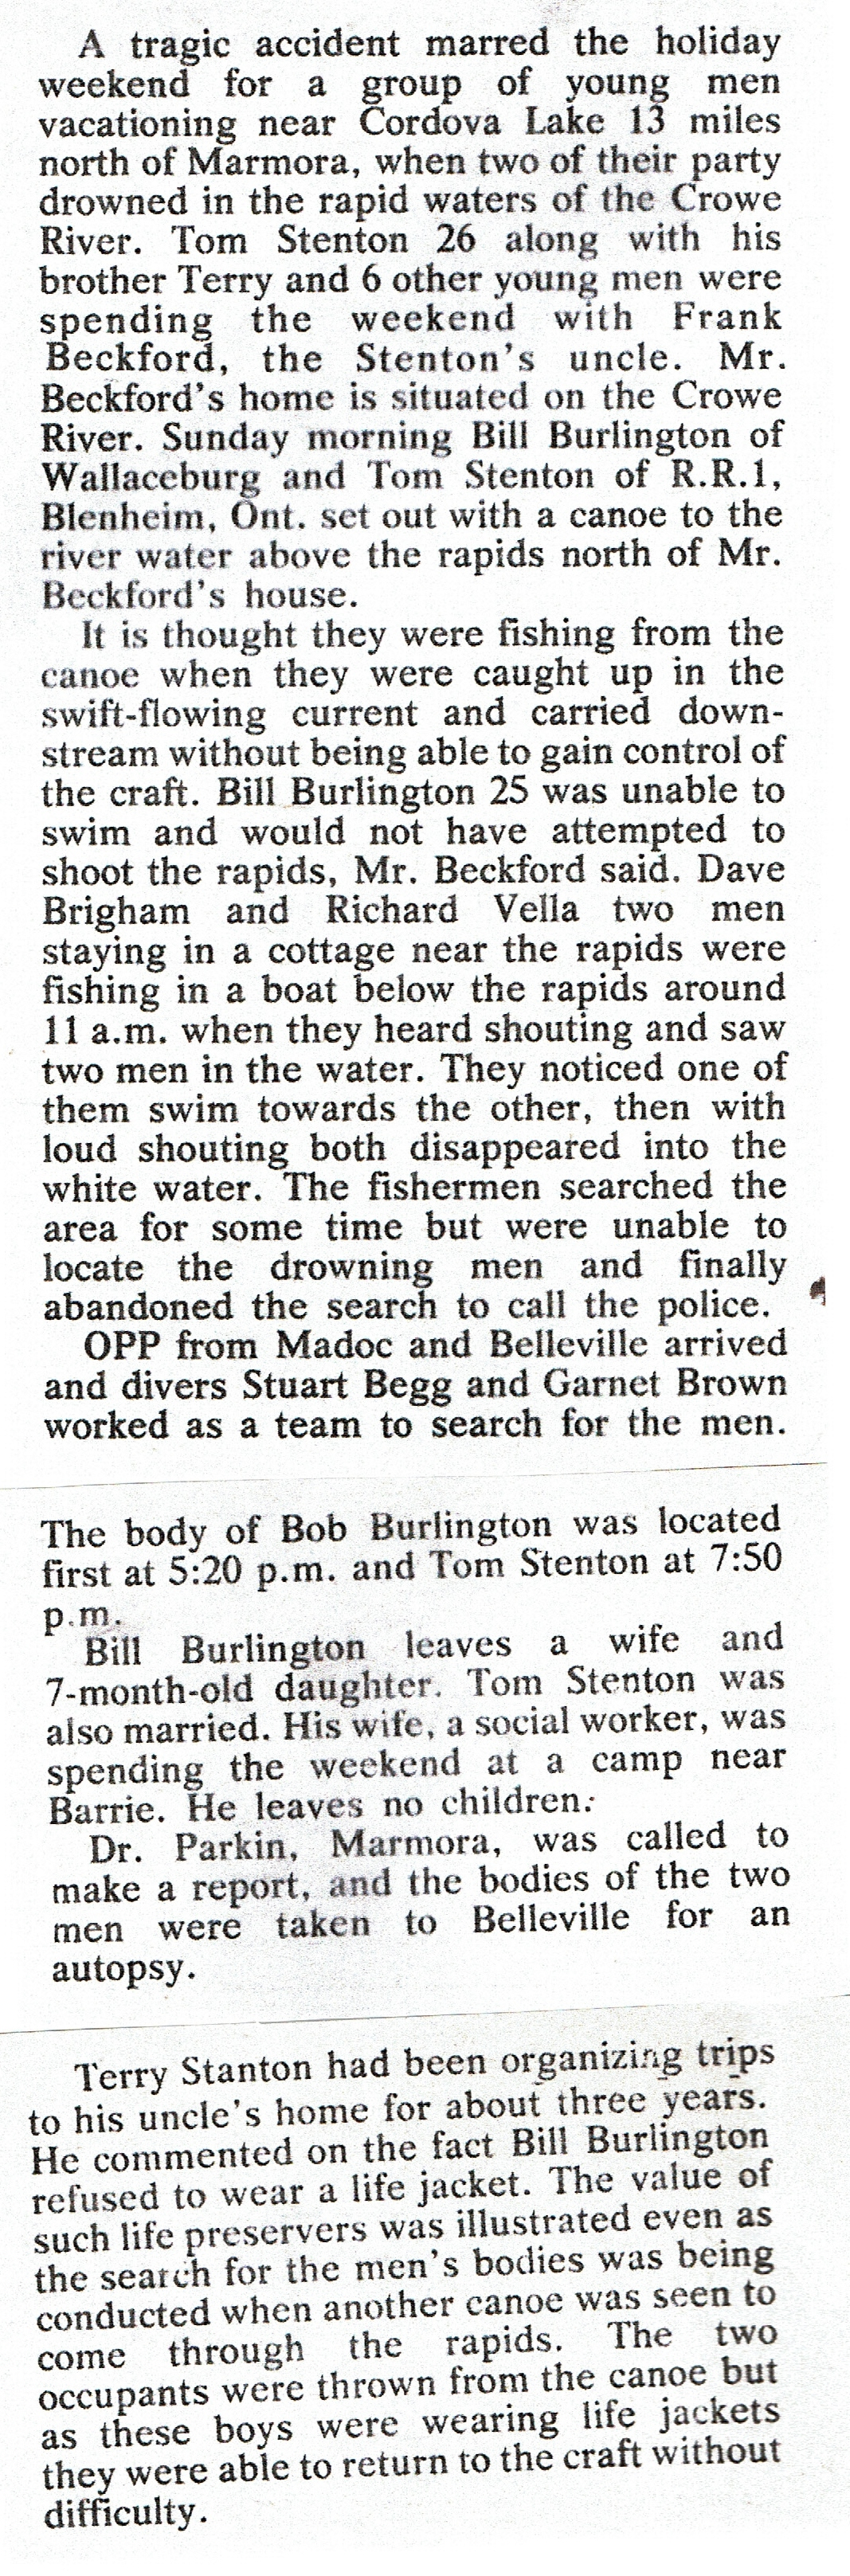 1978 Drowning on Crowe River.jpg